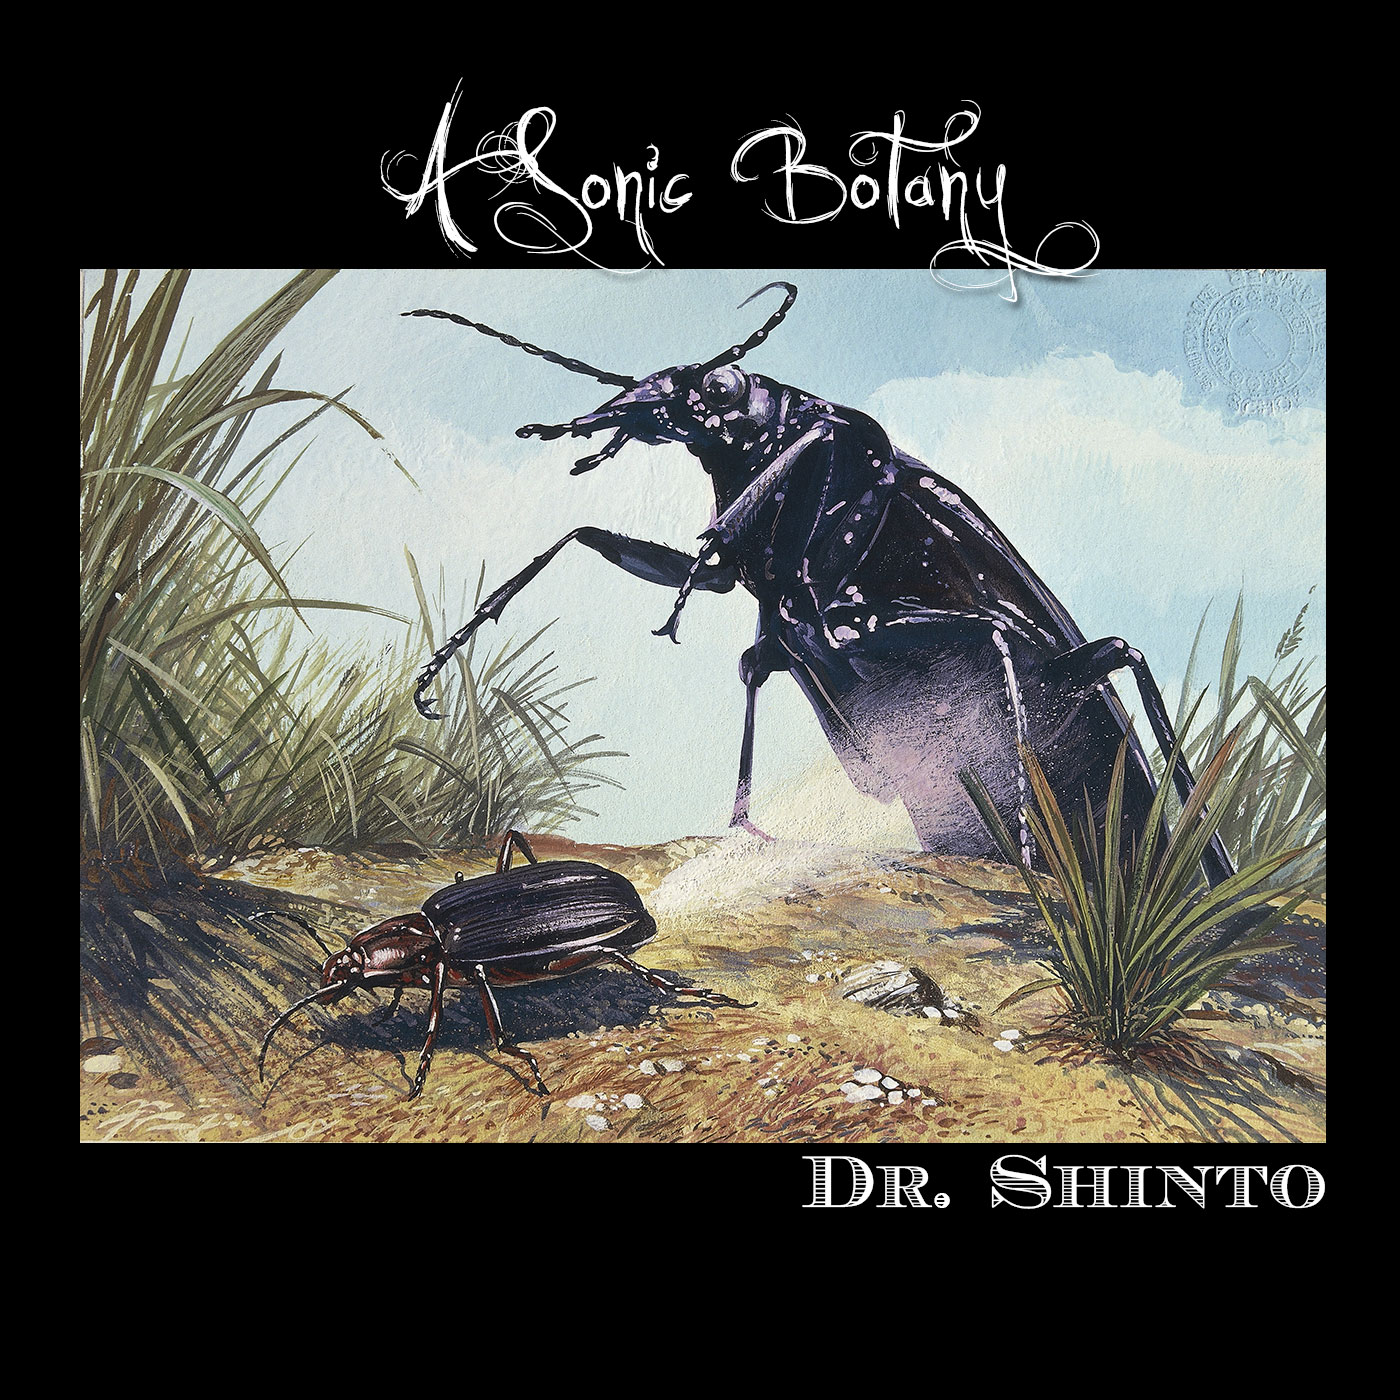 """Dr Shinto Releases """"A Sonic Botany"""" and teases more releases"""